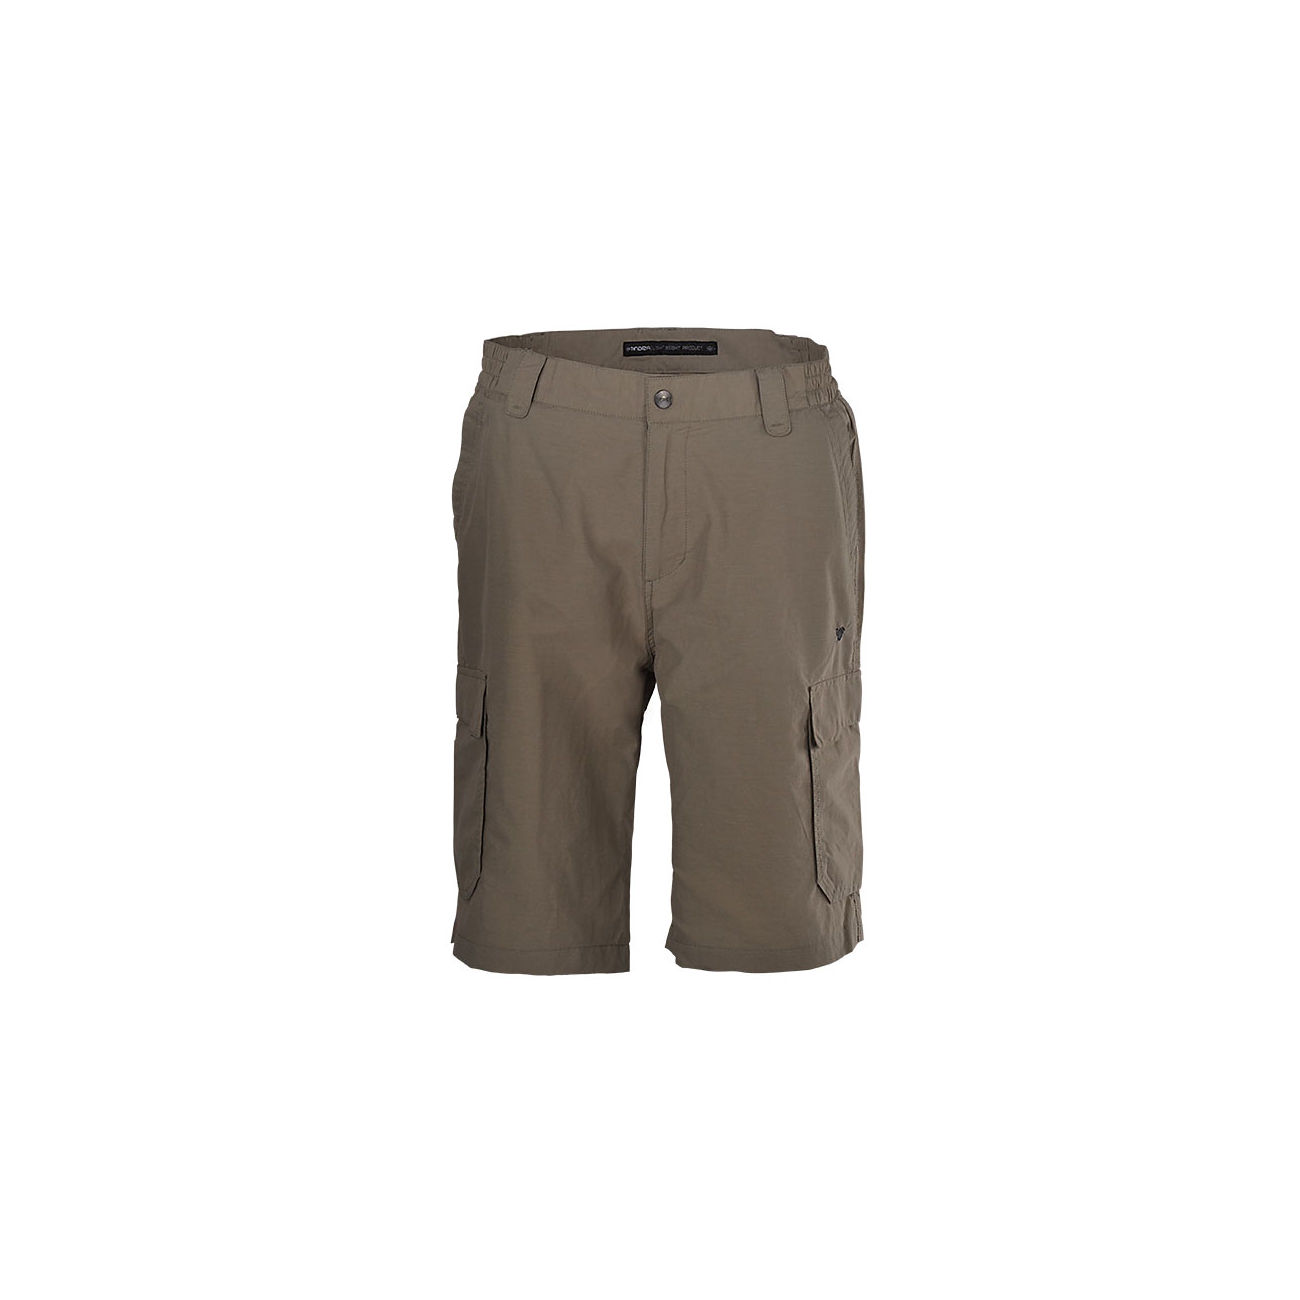 Tindra Eiger Men's Shorts, Kit 0